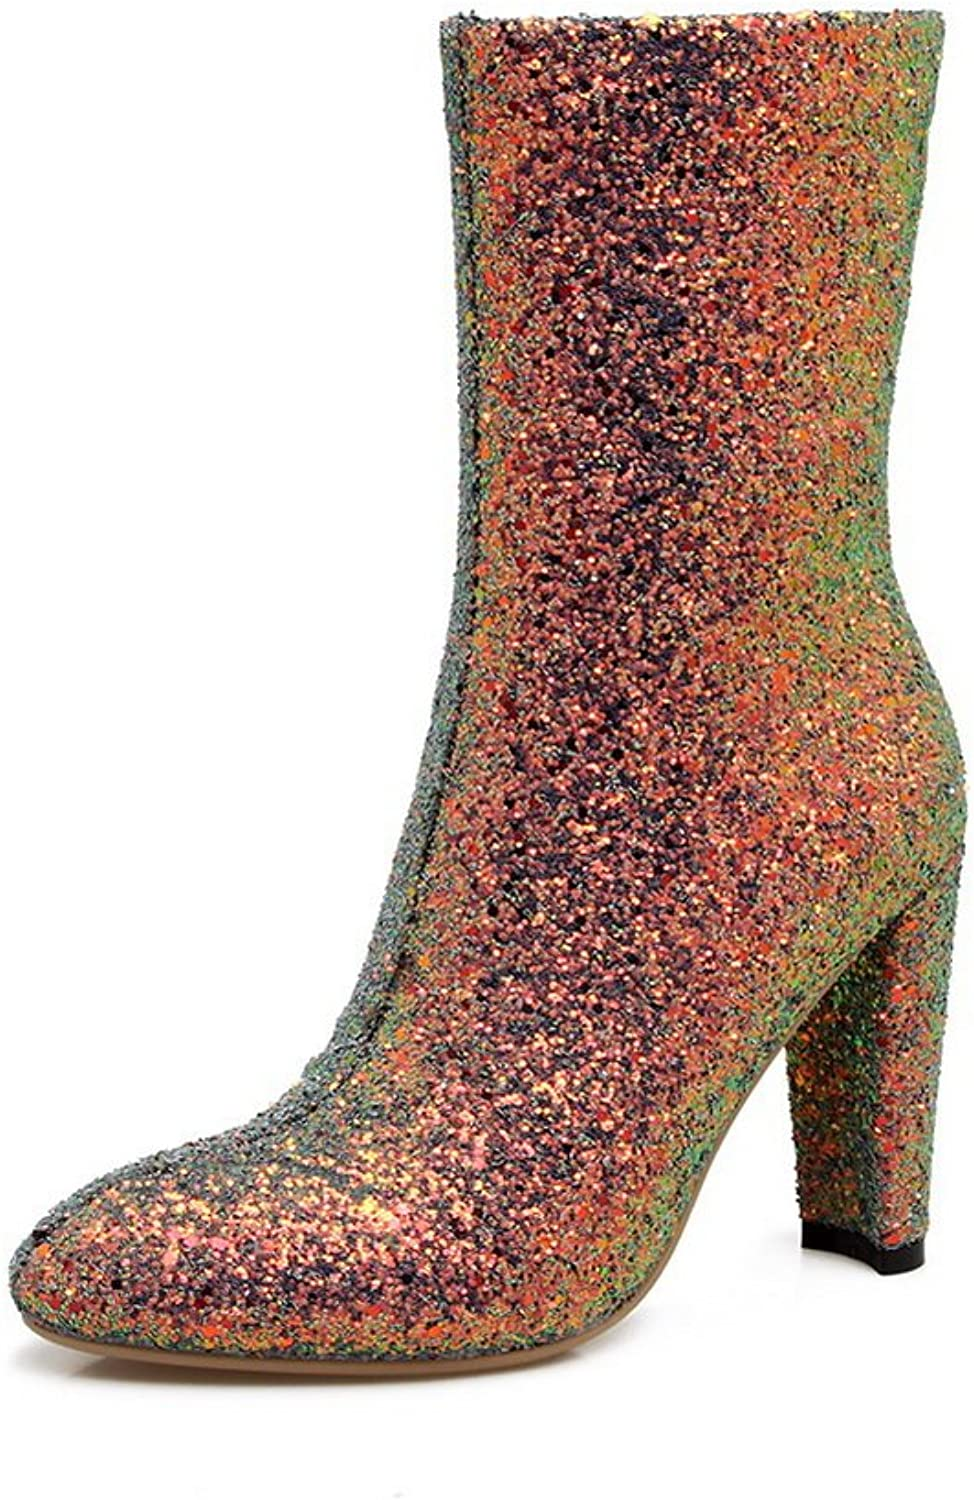 BalaMasa Womens High-Heels Zipper Sequin Novelty Pointed-Toe Multi-colord Sequin Boots ABL09788 - 7 B(M) US